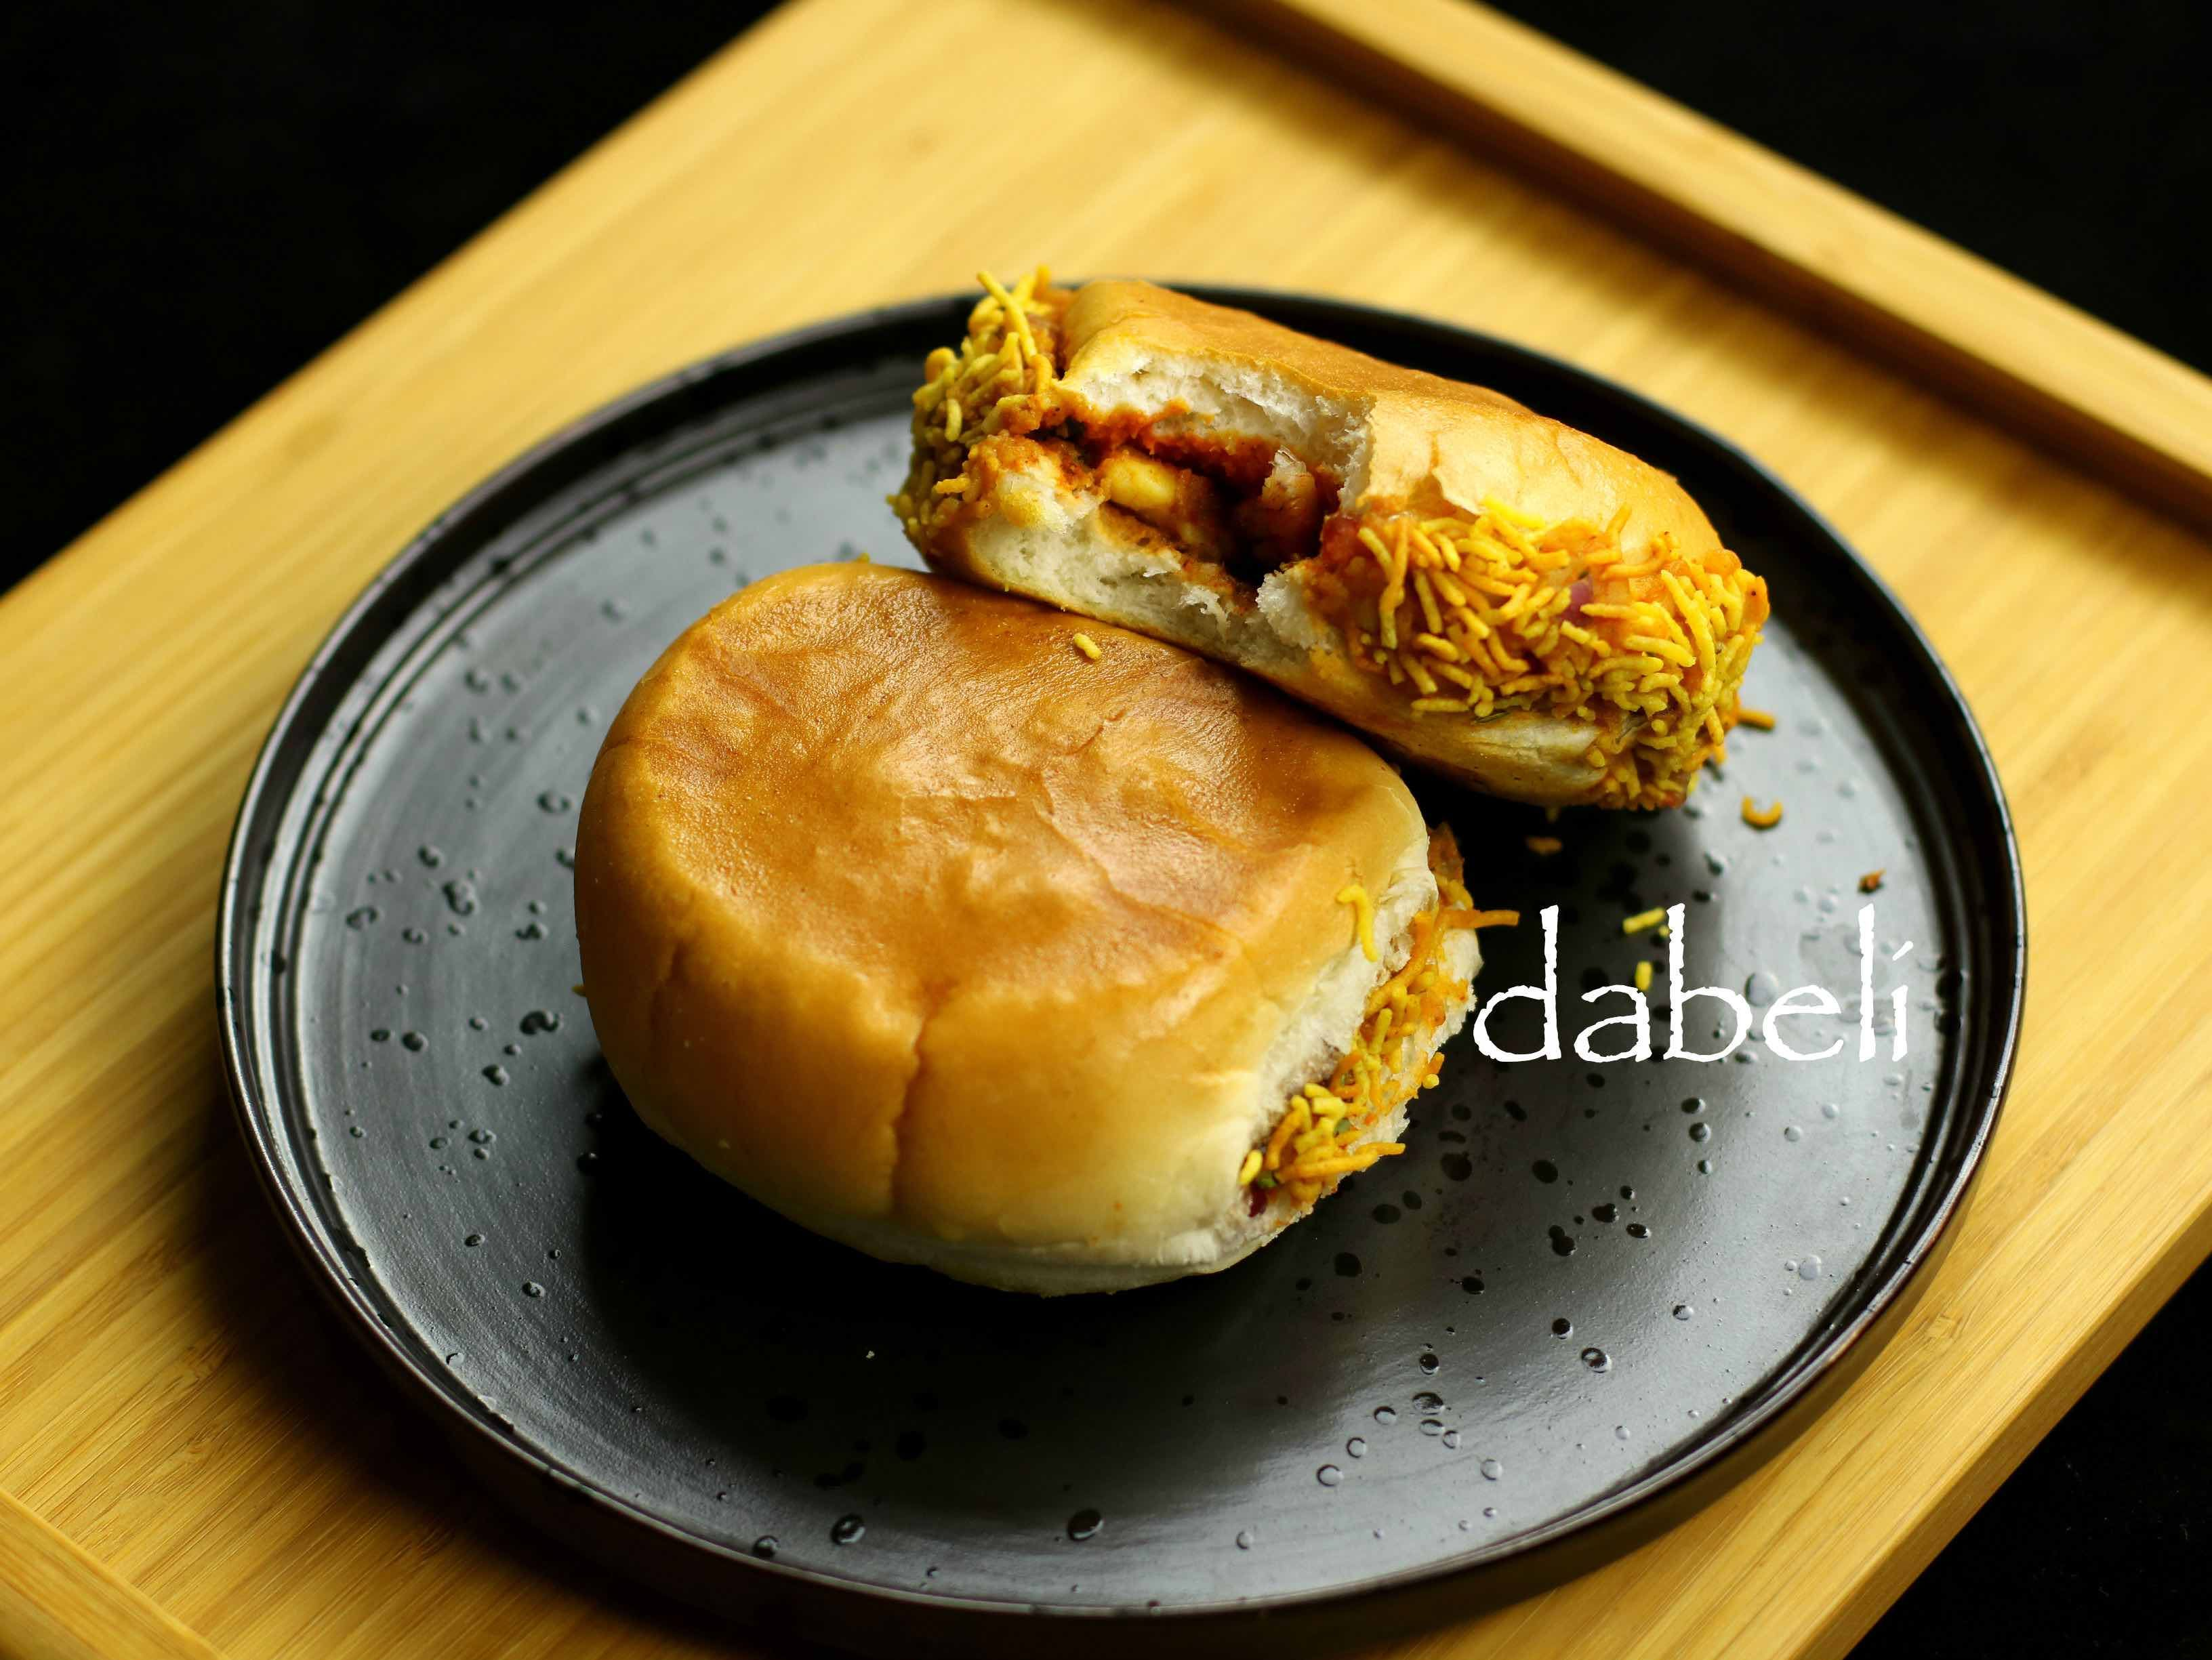 Dabeli recipe kacchi dabeli recipe kutchi dabeli with step by dabeli recipe kacchi dabeli recipe kutchi dabeli with step by step photovideo indian foodsindian forumfinder